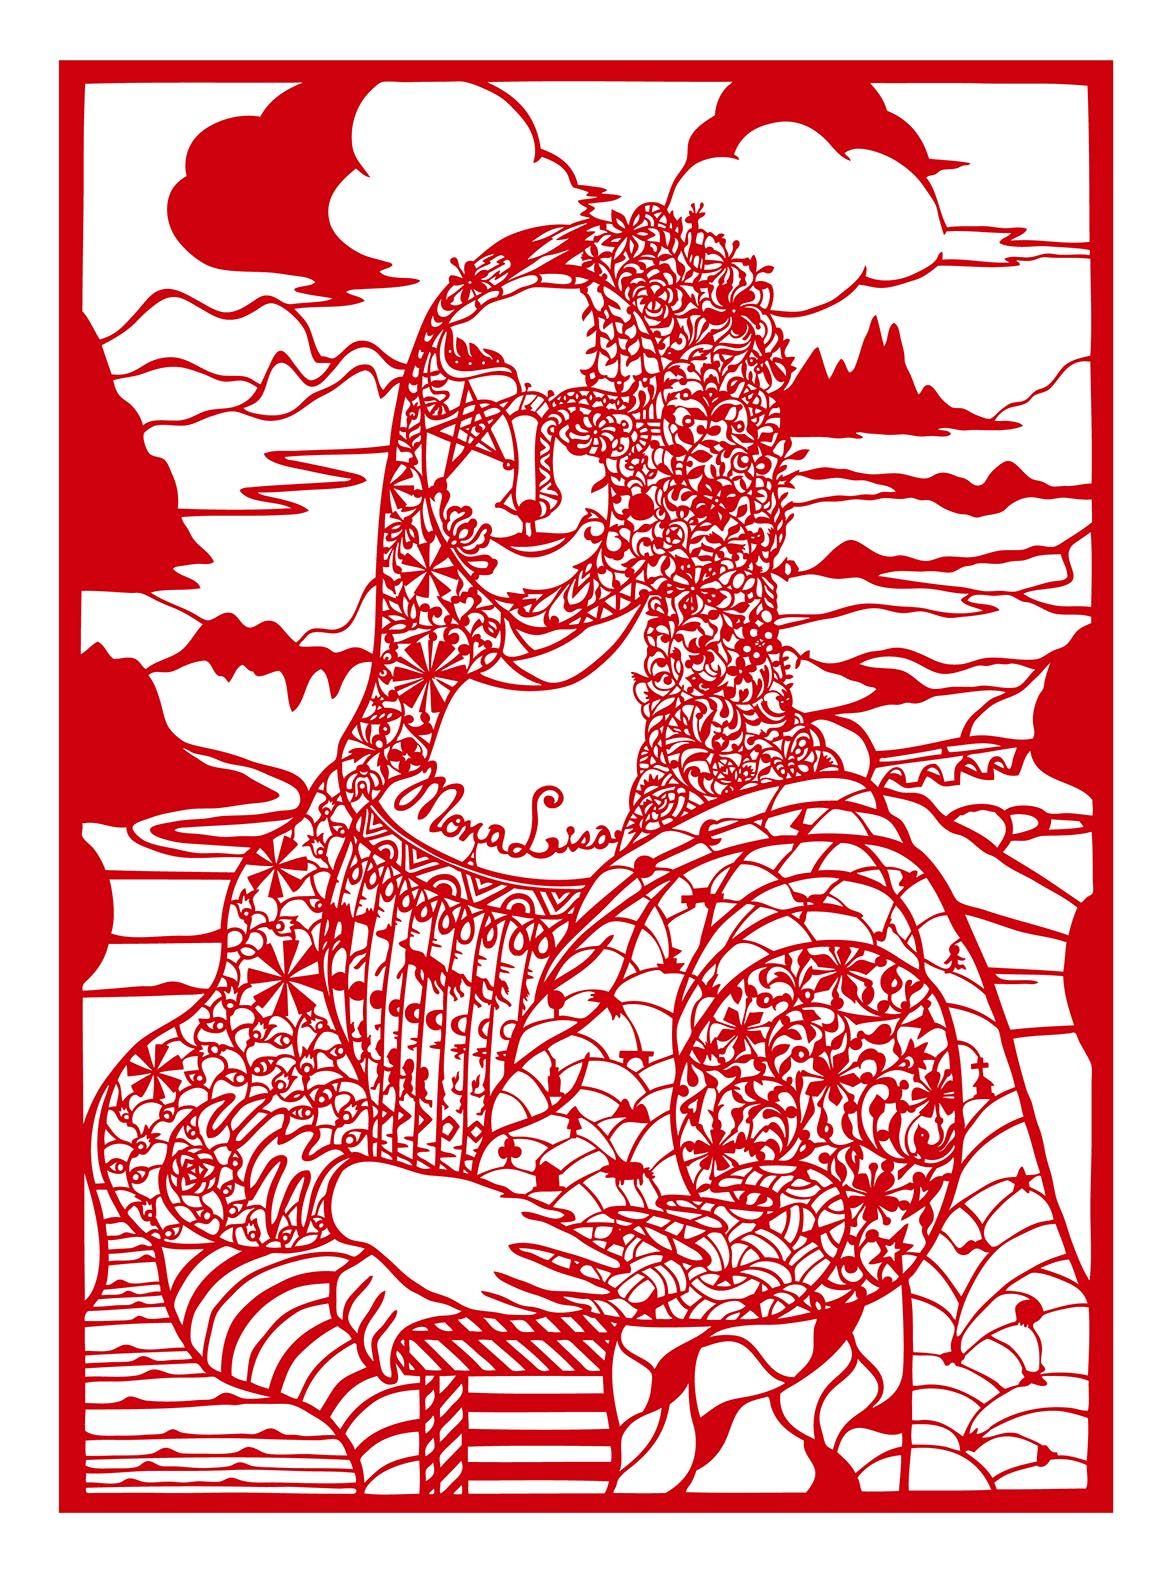 Reading Mona Lisa with Diamonds Red silk fabric and paper 85x60cm